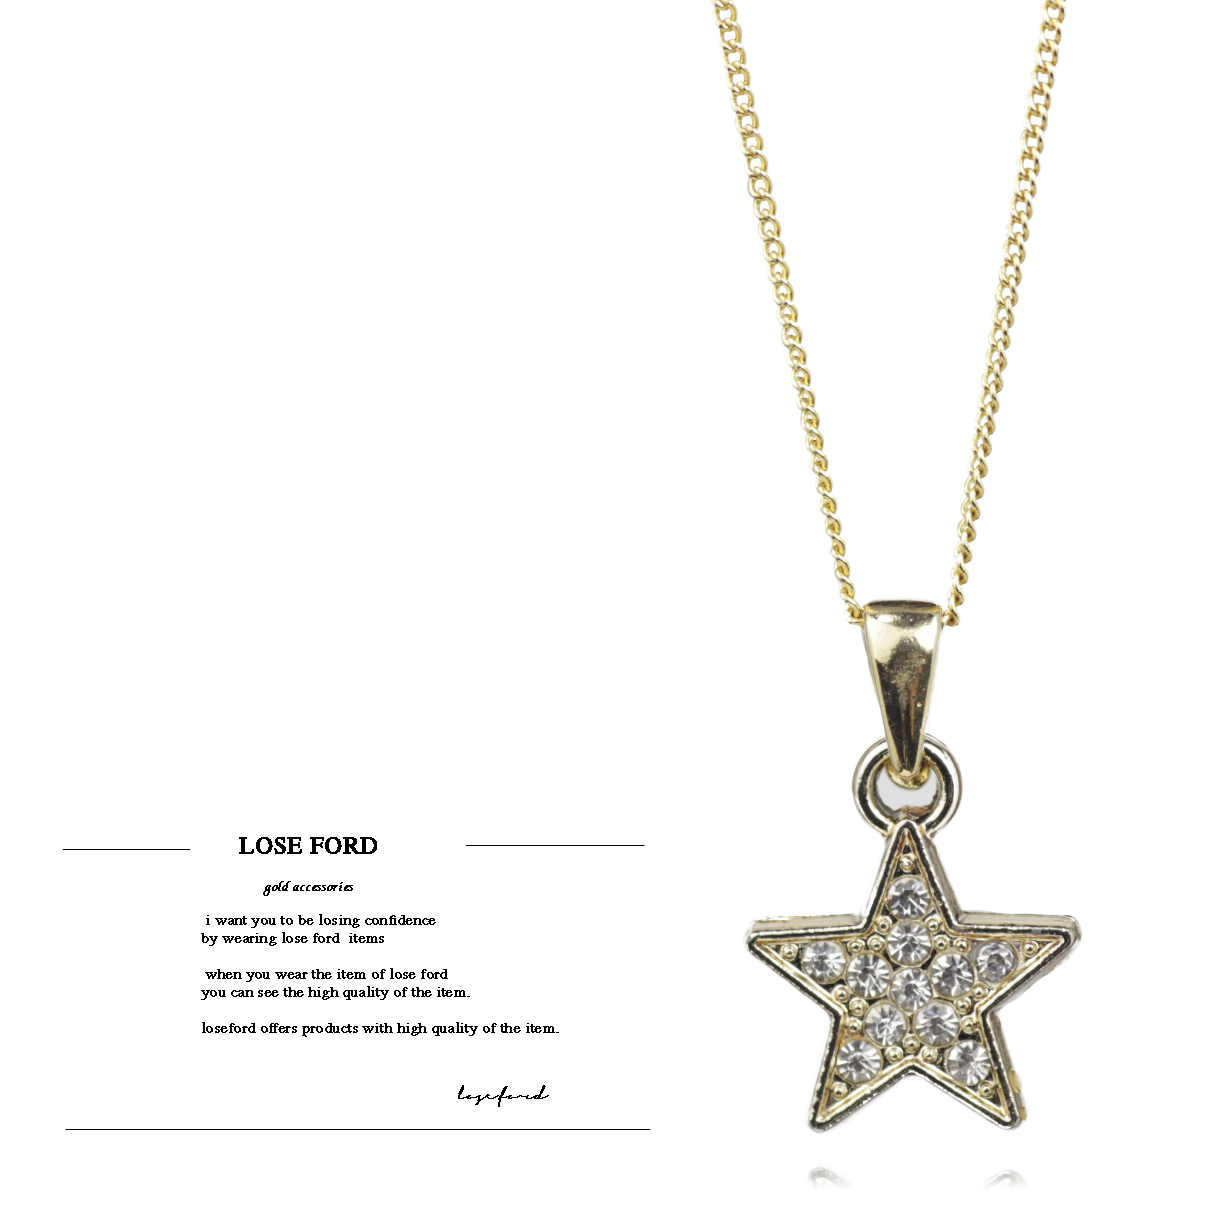 18kgp gold star necklace loseford 18kgp gold star necklace mozeypictures Gallery